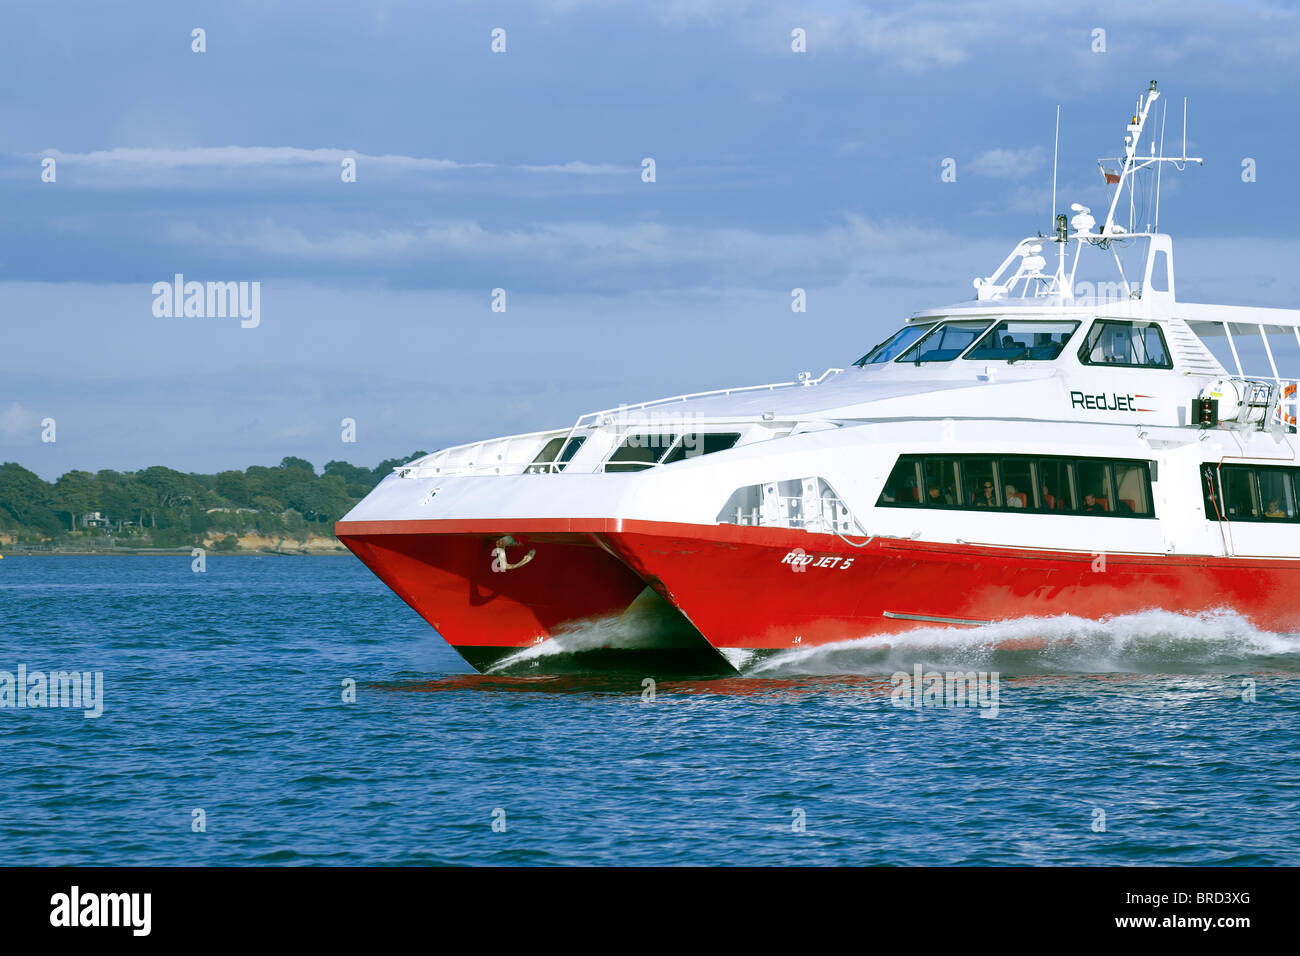 fast catamaran red jet Cowes to Southampton - Stock Image